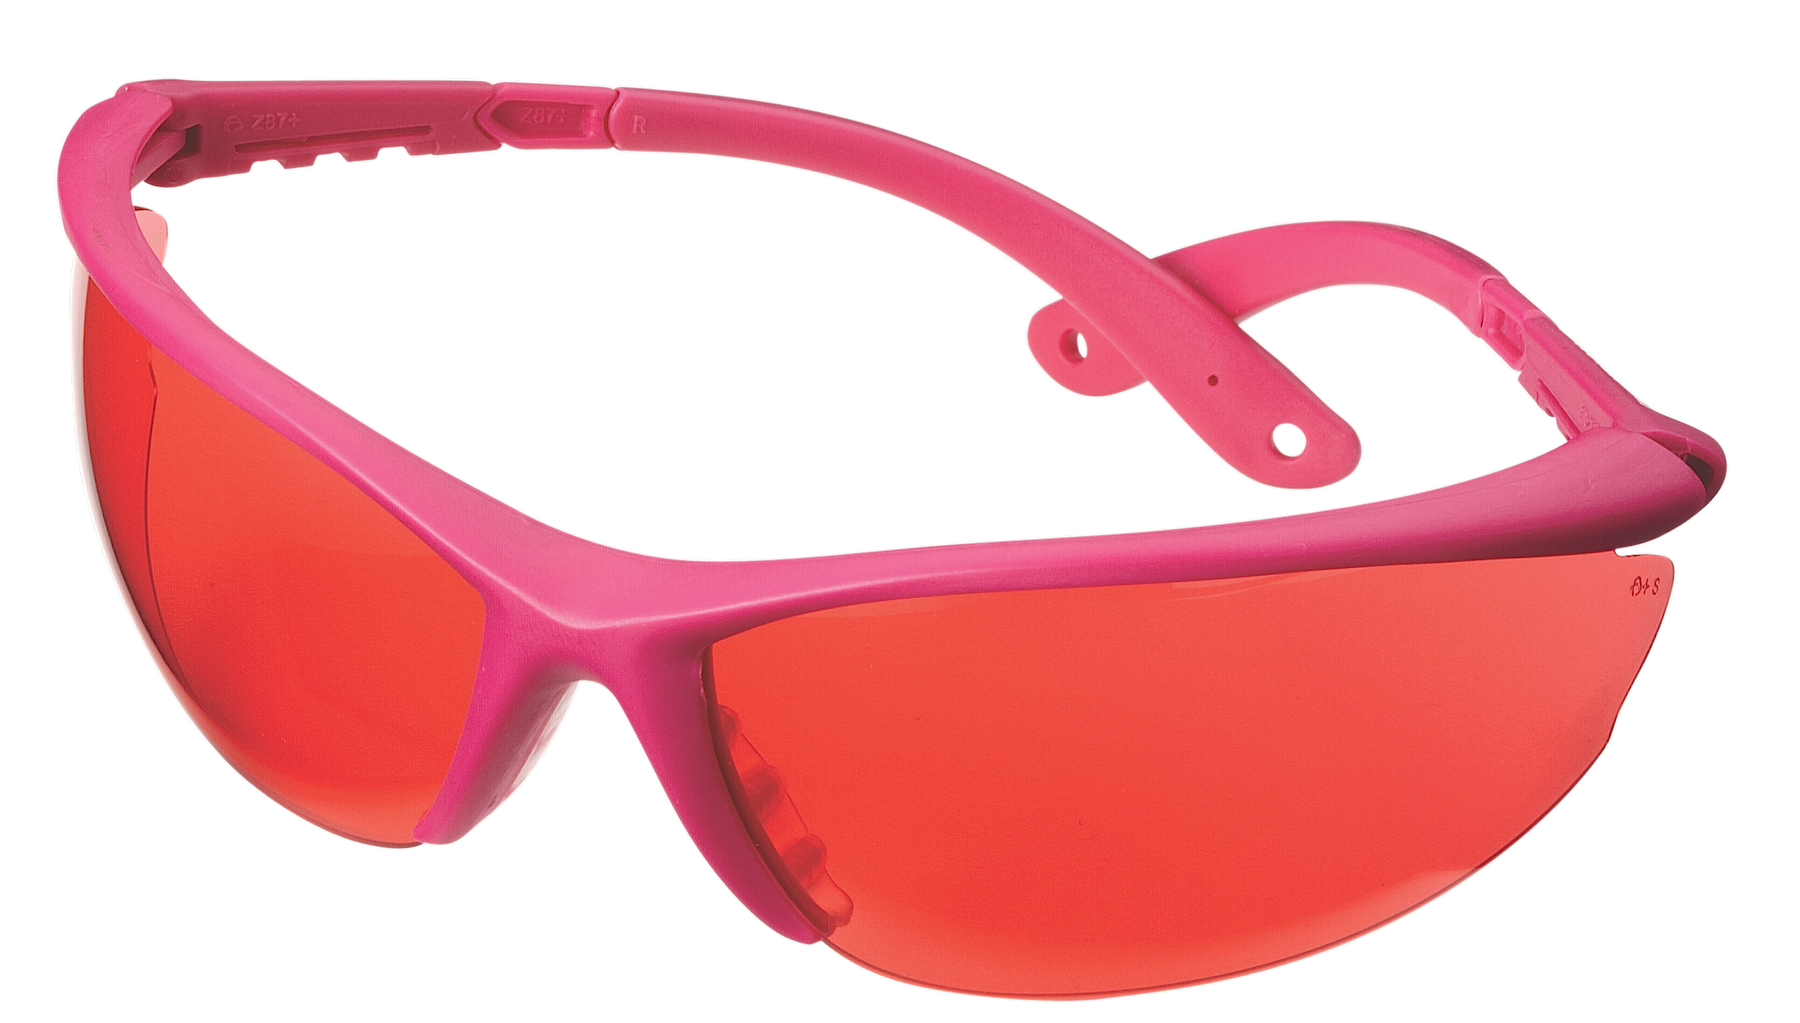 Champion Targets 40605 Standard Shooting/Sporting Glasses Pink Frame/Rose Lens